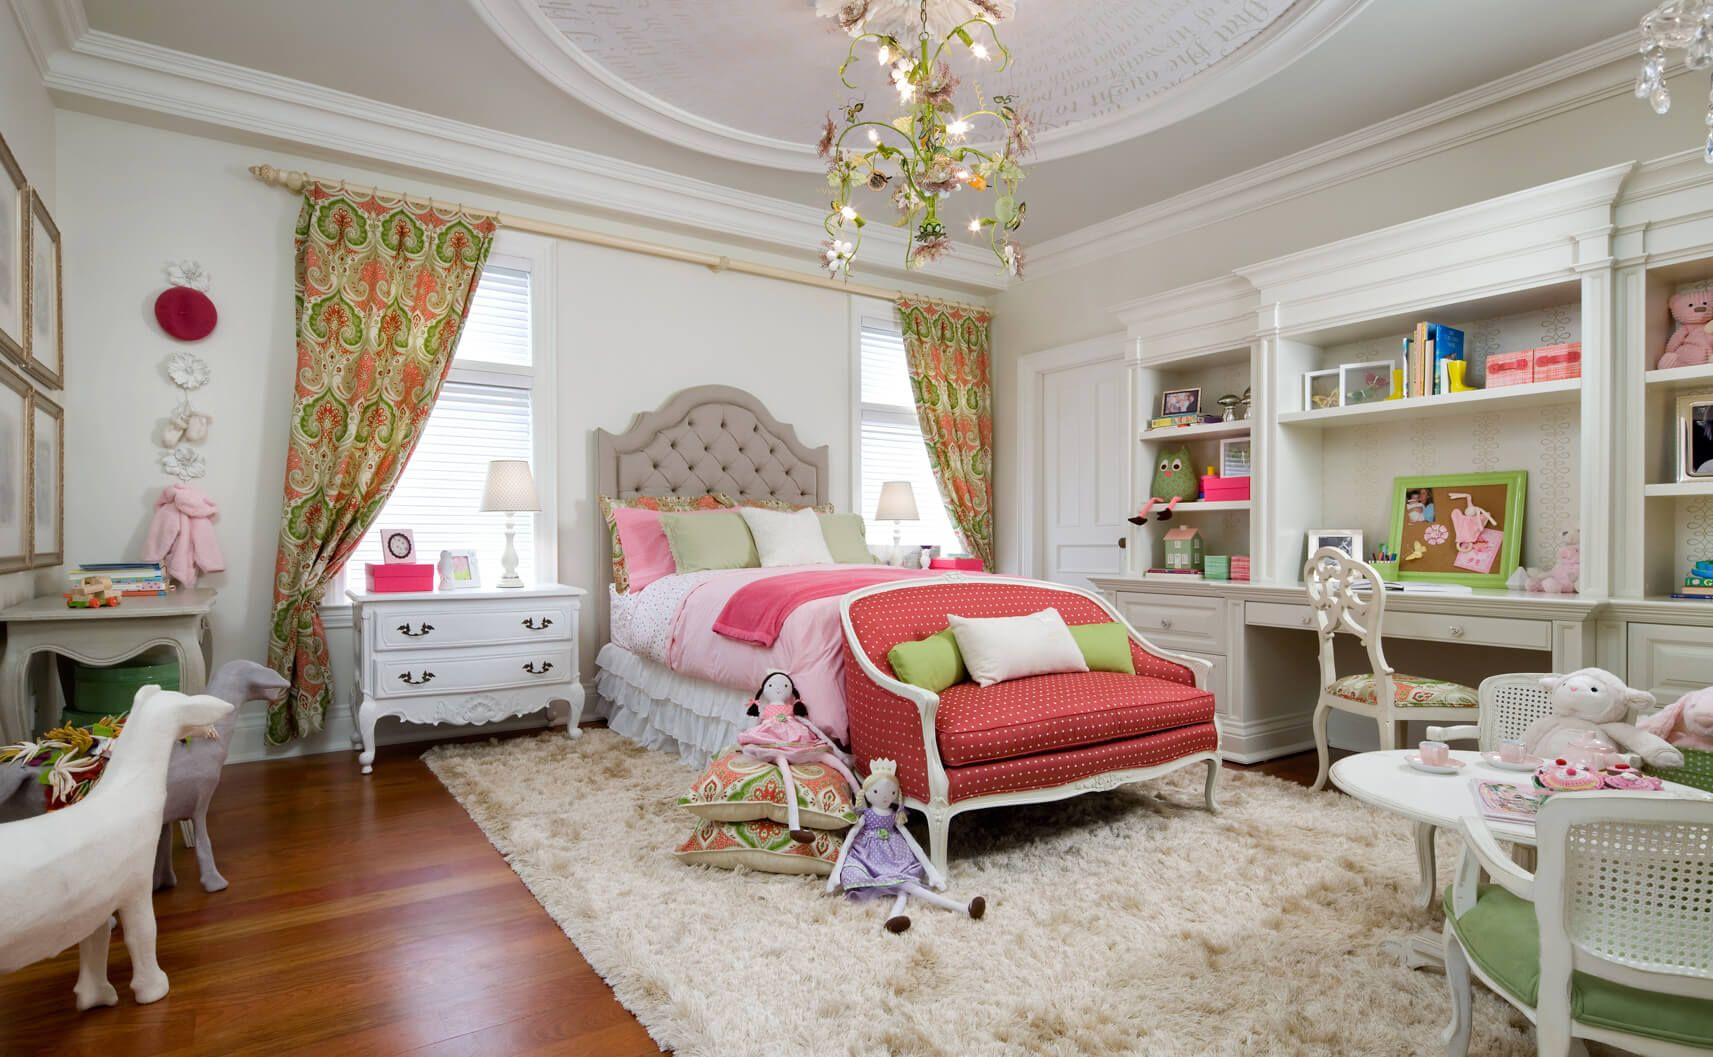 Candice Olson Bedroom Designs Interesting Resplendent Little Girl's Roomcandice Olson Design And Brandon Review